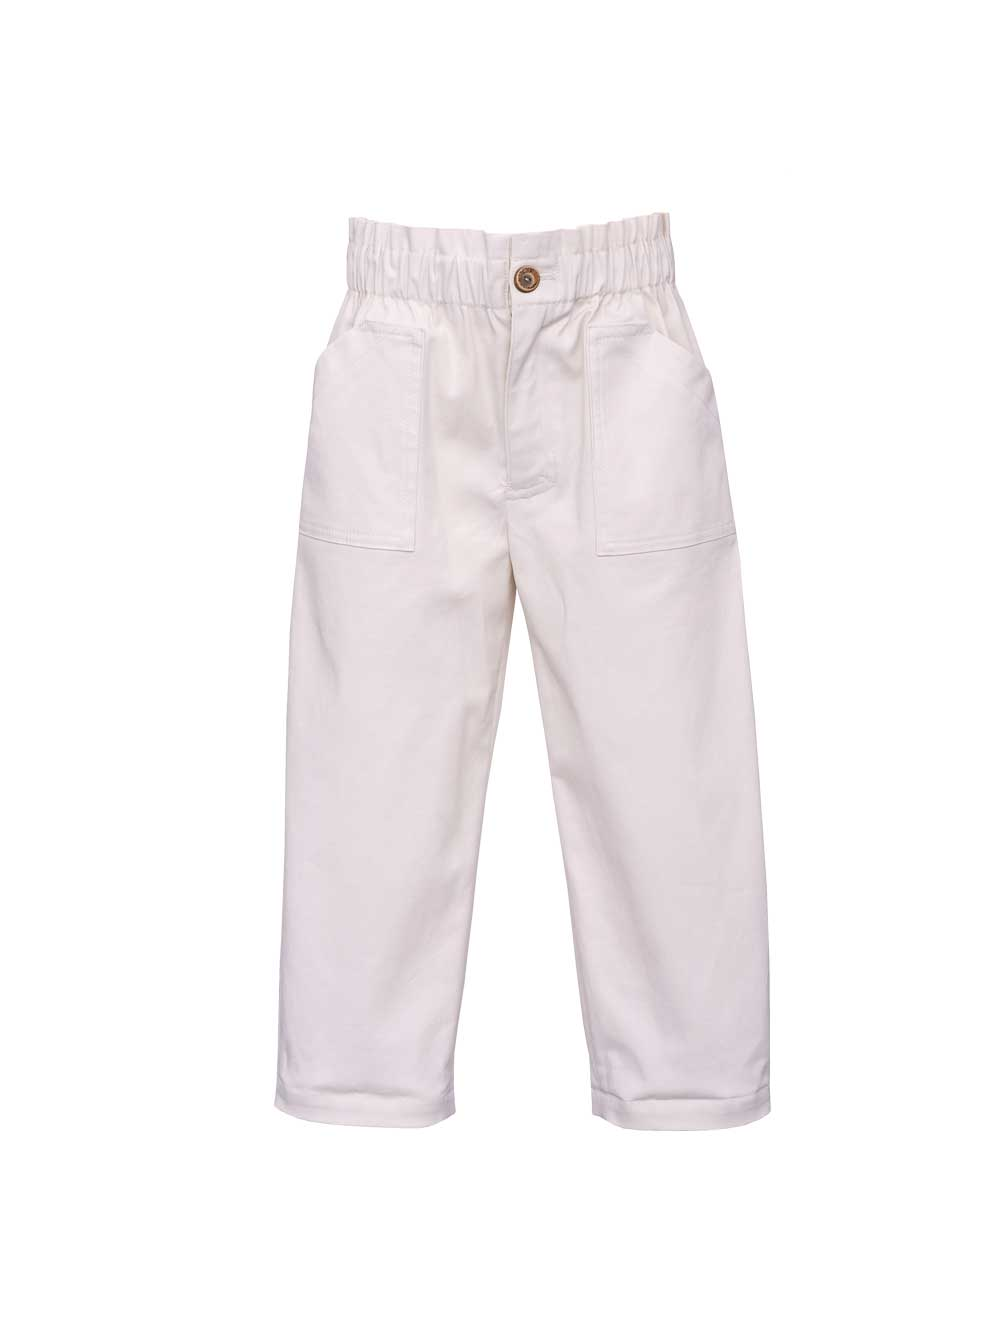 Dale White Chinos